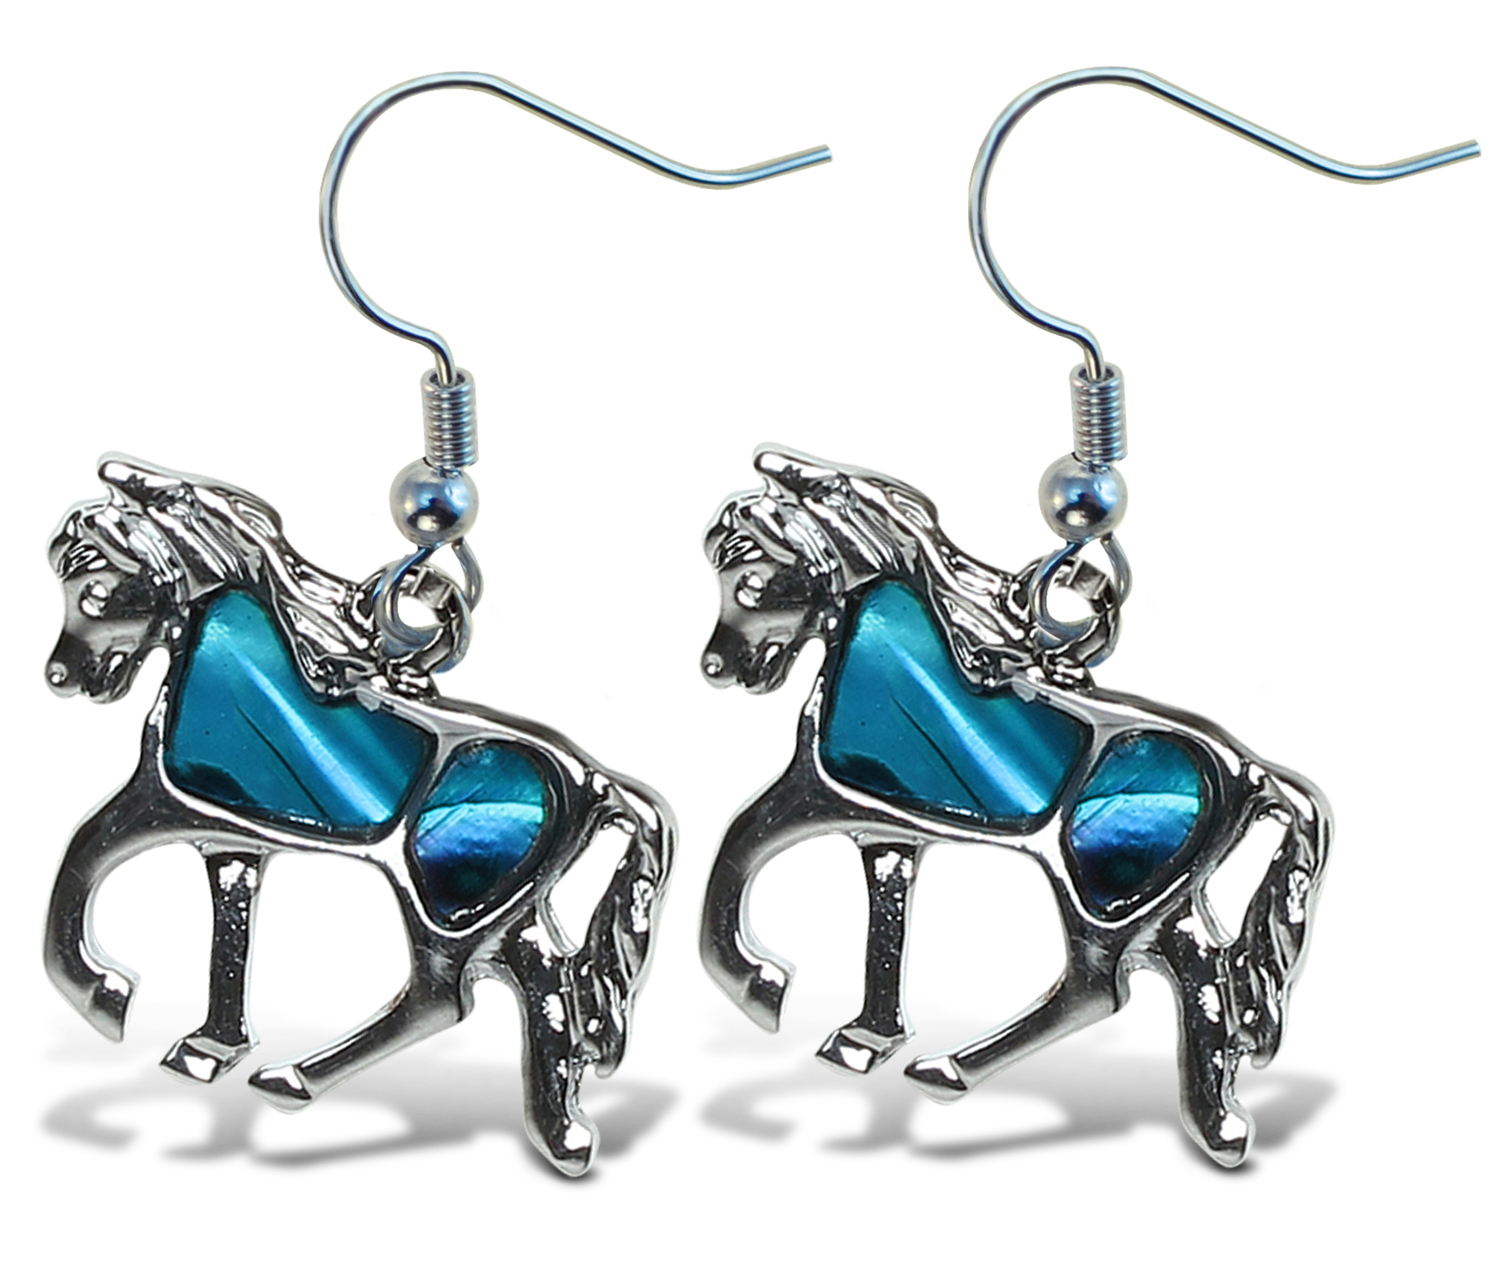 Aqua JEWELRY Earrings Dangle Post Fish Hook Horse